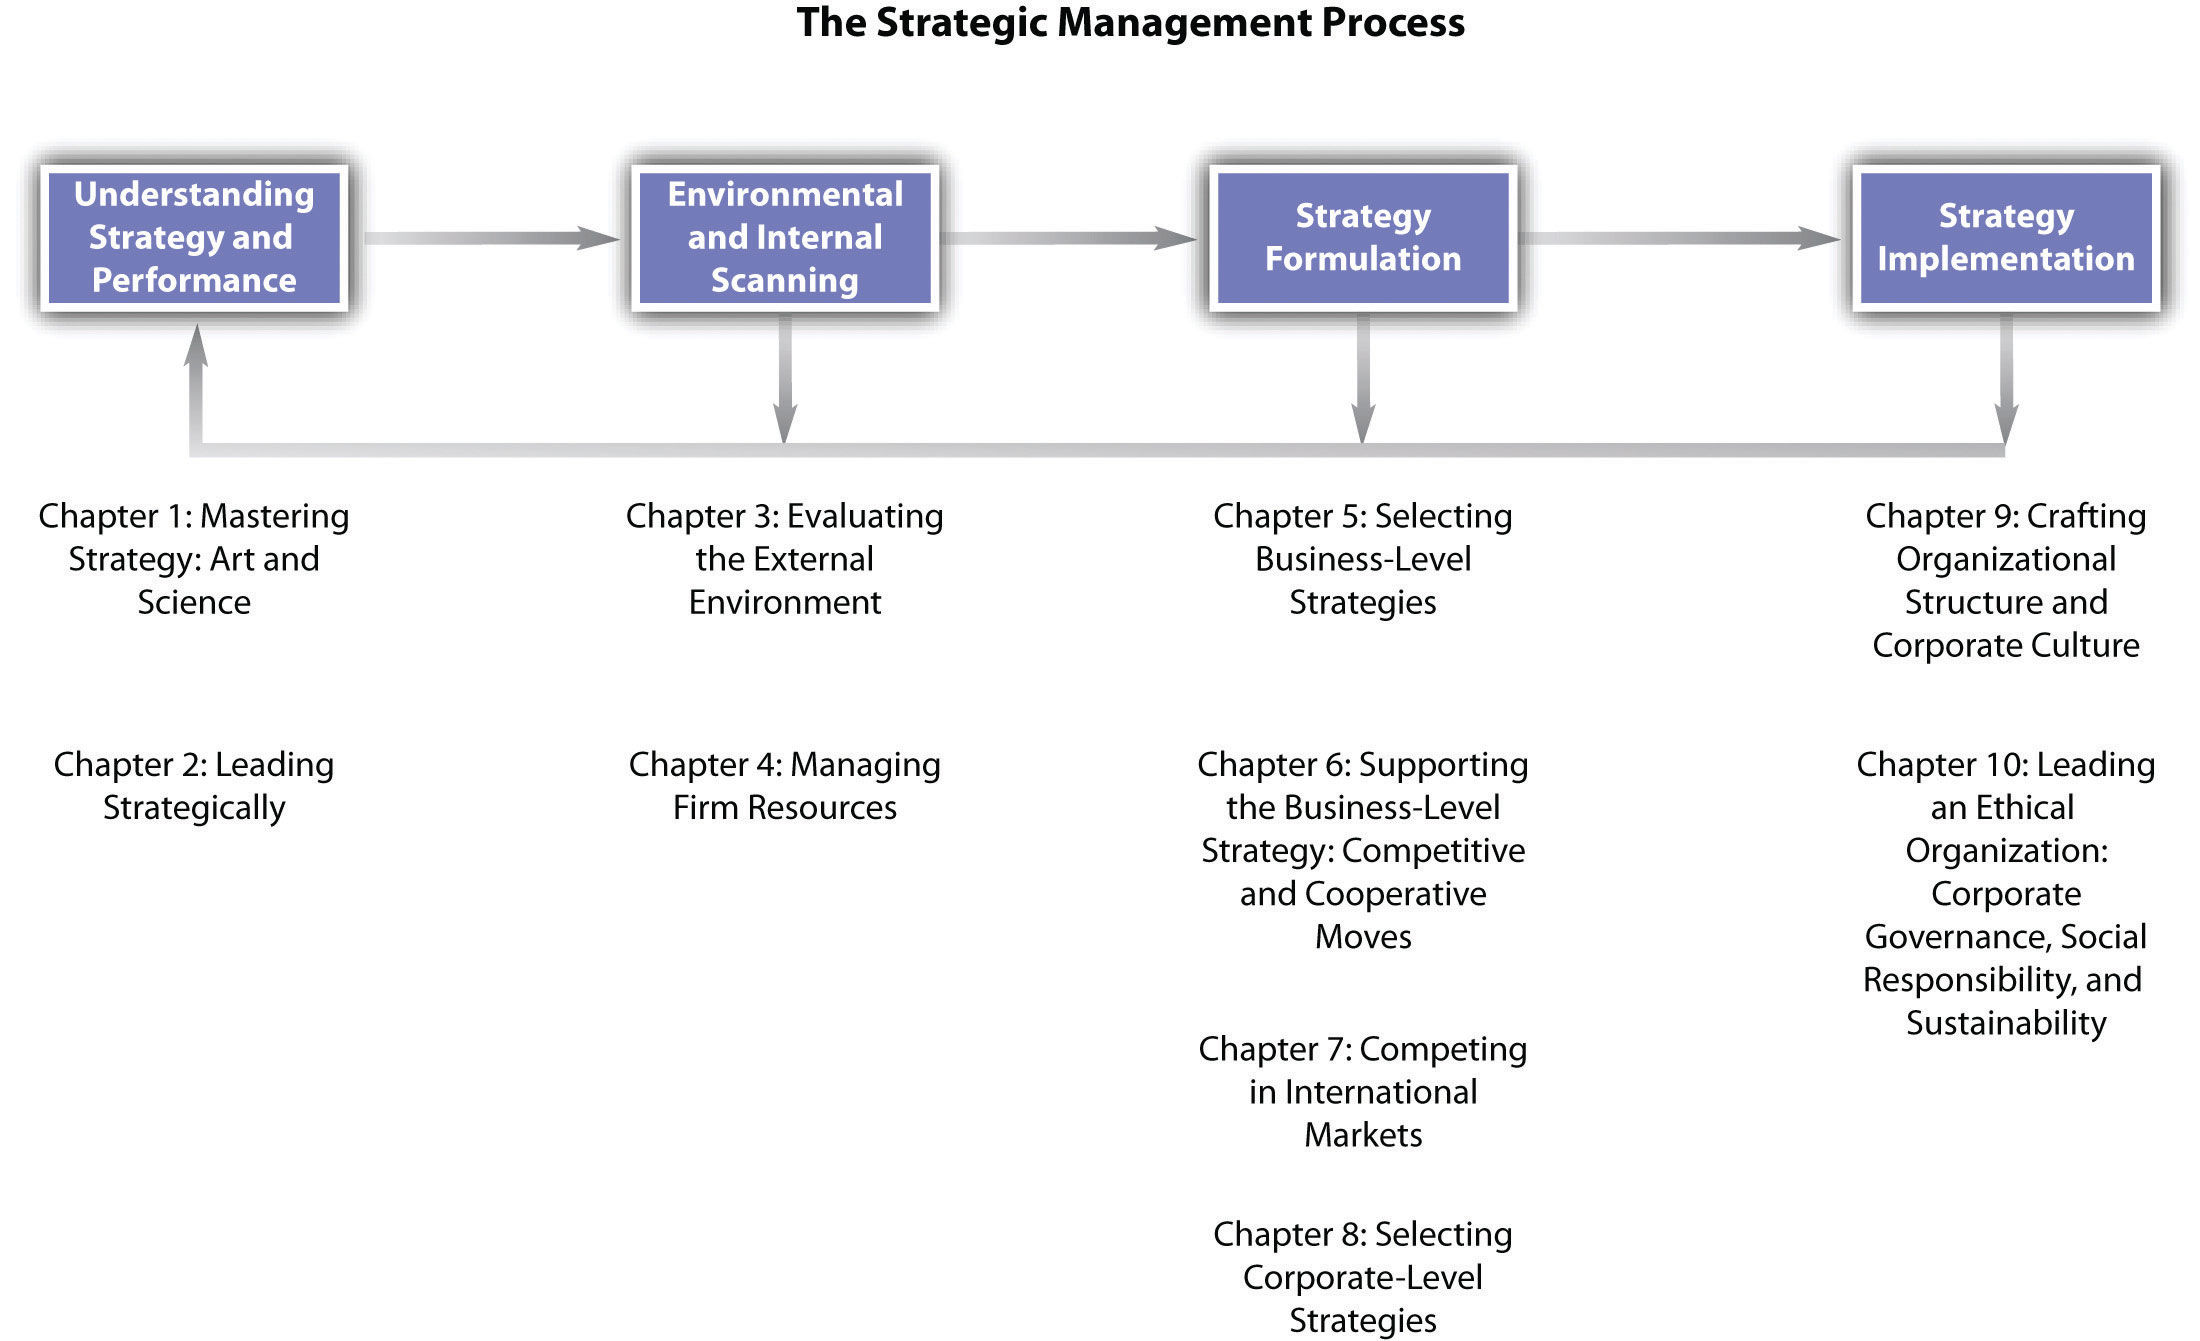 stratigic leadership Strategic leadership is defined as determining where an organization is going and how to get there years ago this was called long-range planning decisions then were made by upper management behind closed doors today strategic planning is likely to involve individuals from all levels of management and staff.